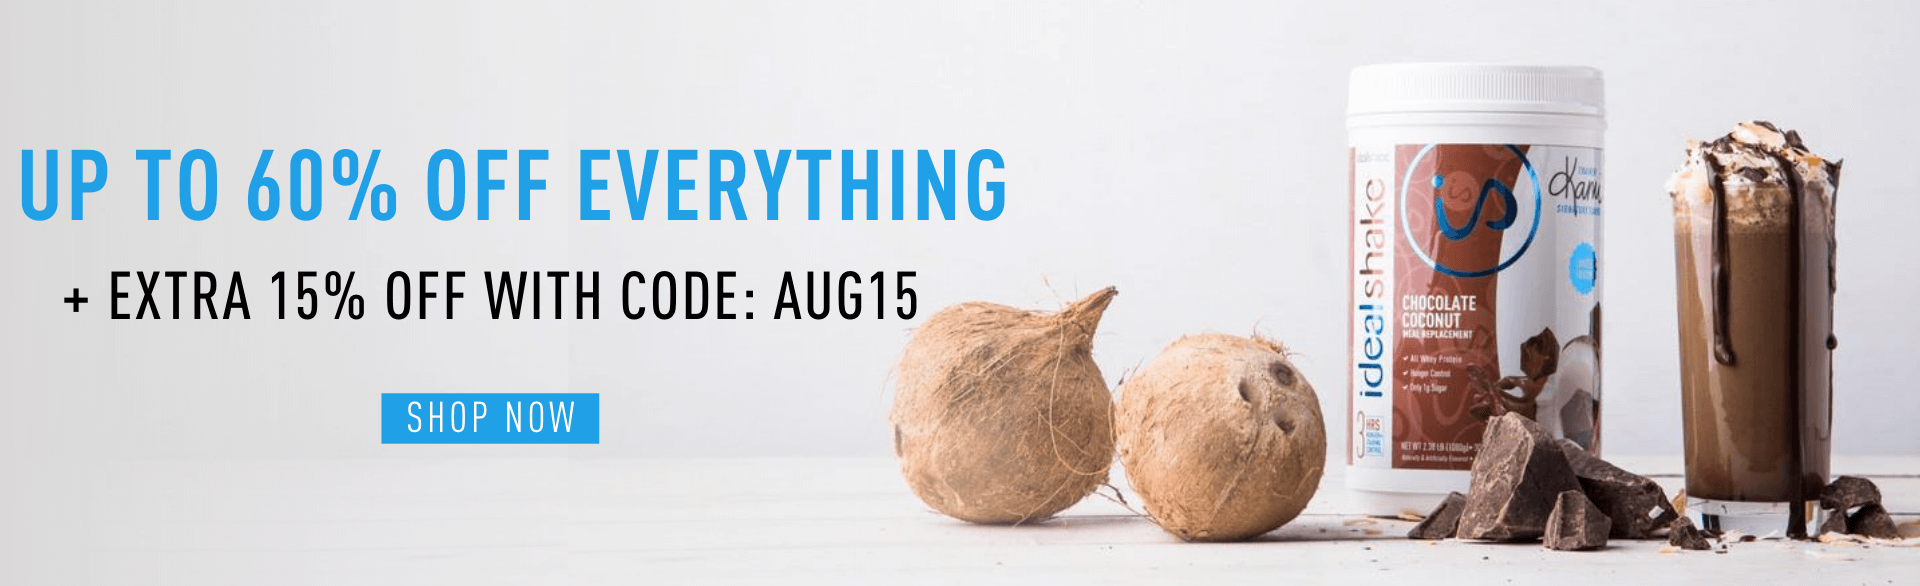 up to 60% off everything + extra 15% off | Use code: AUG15